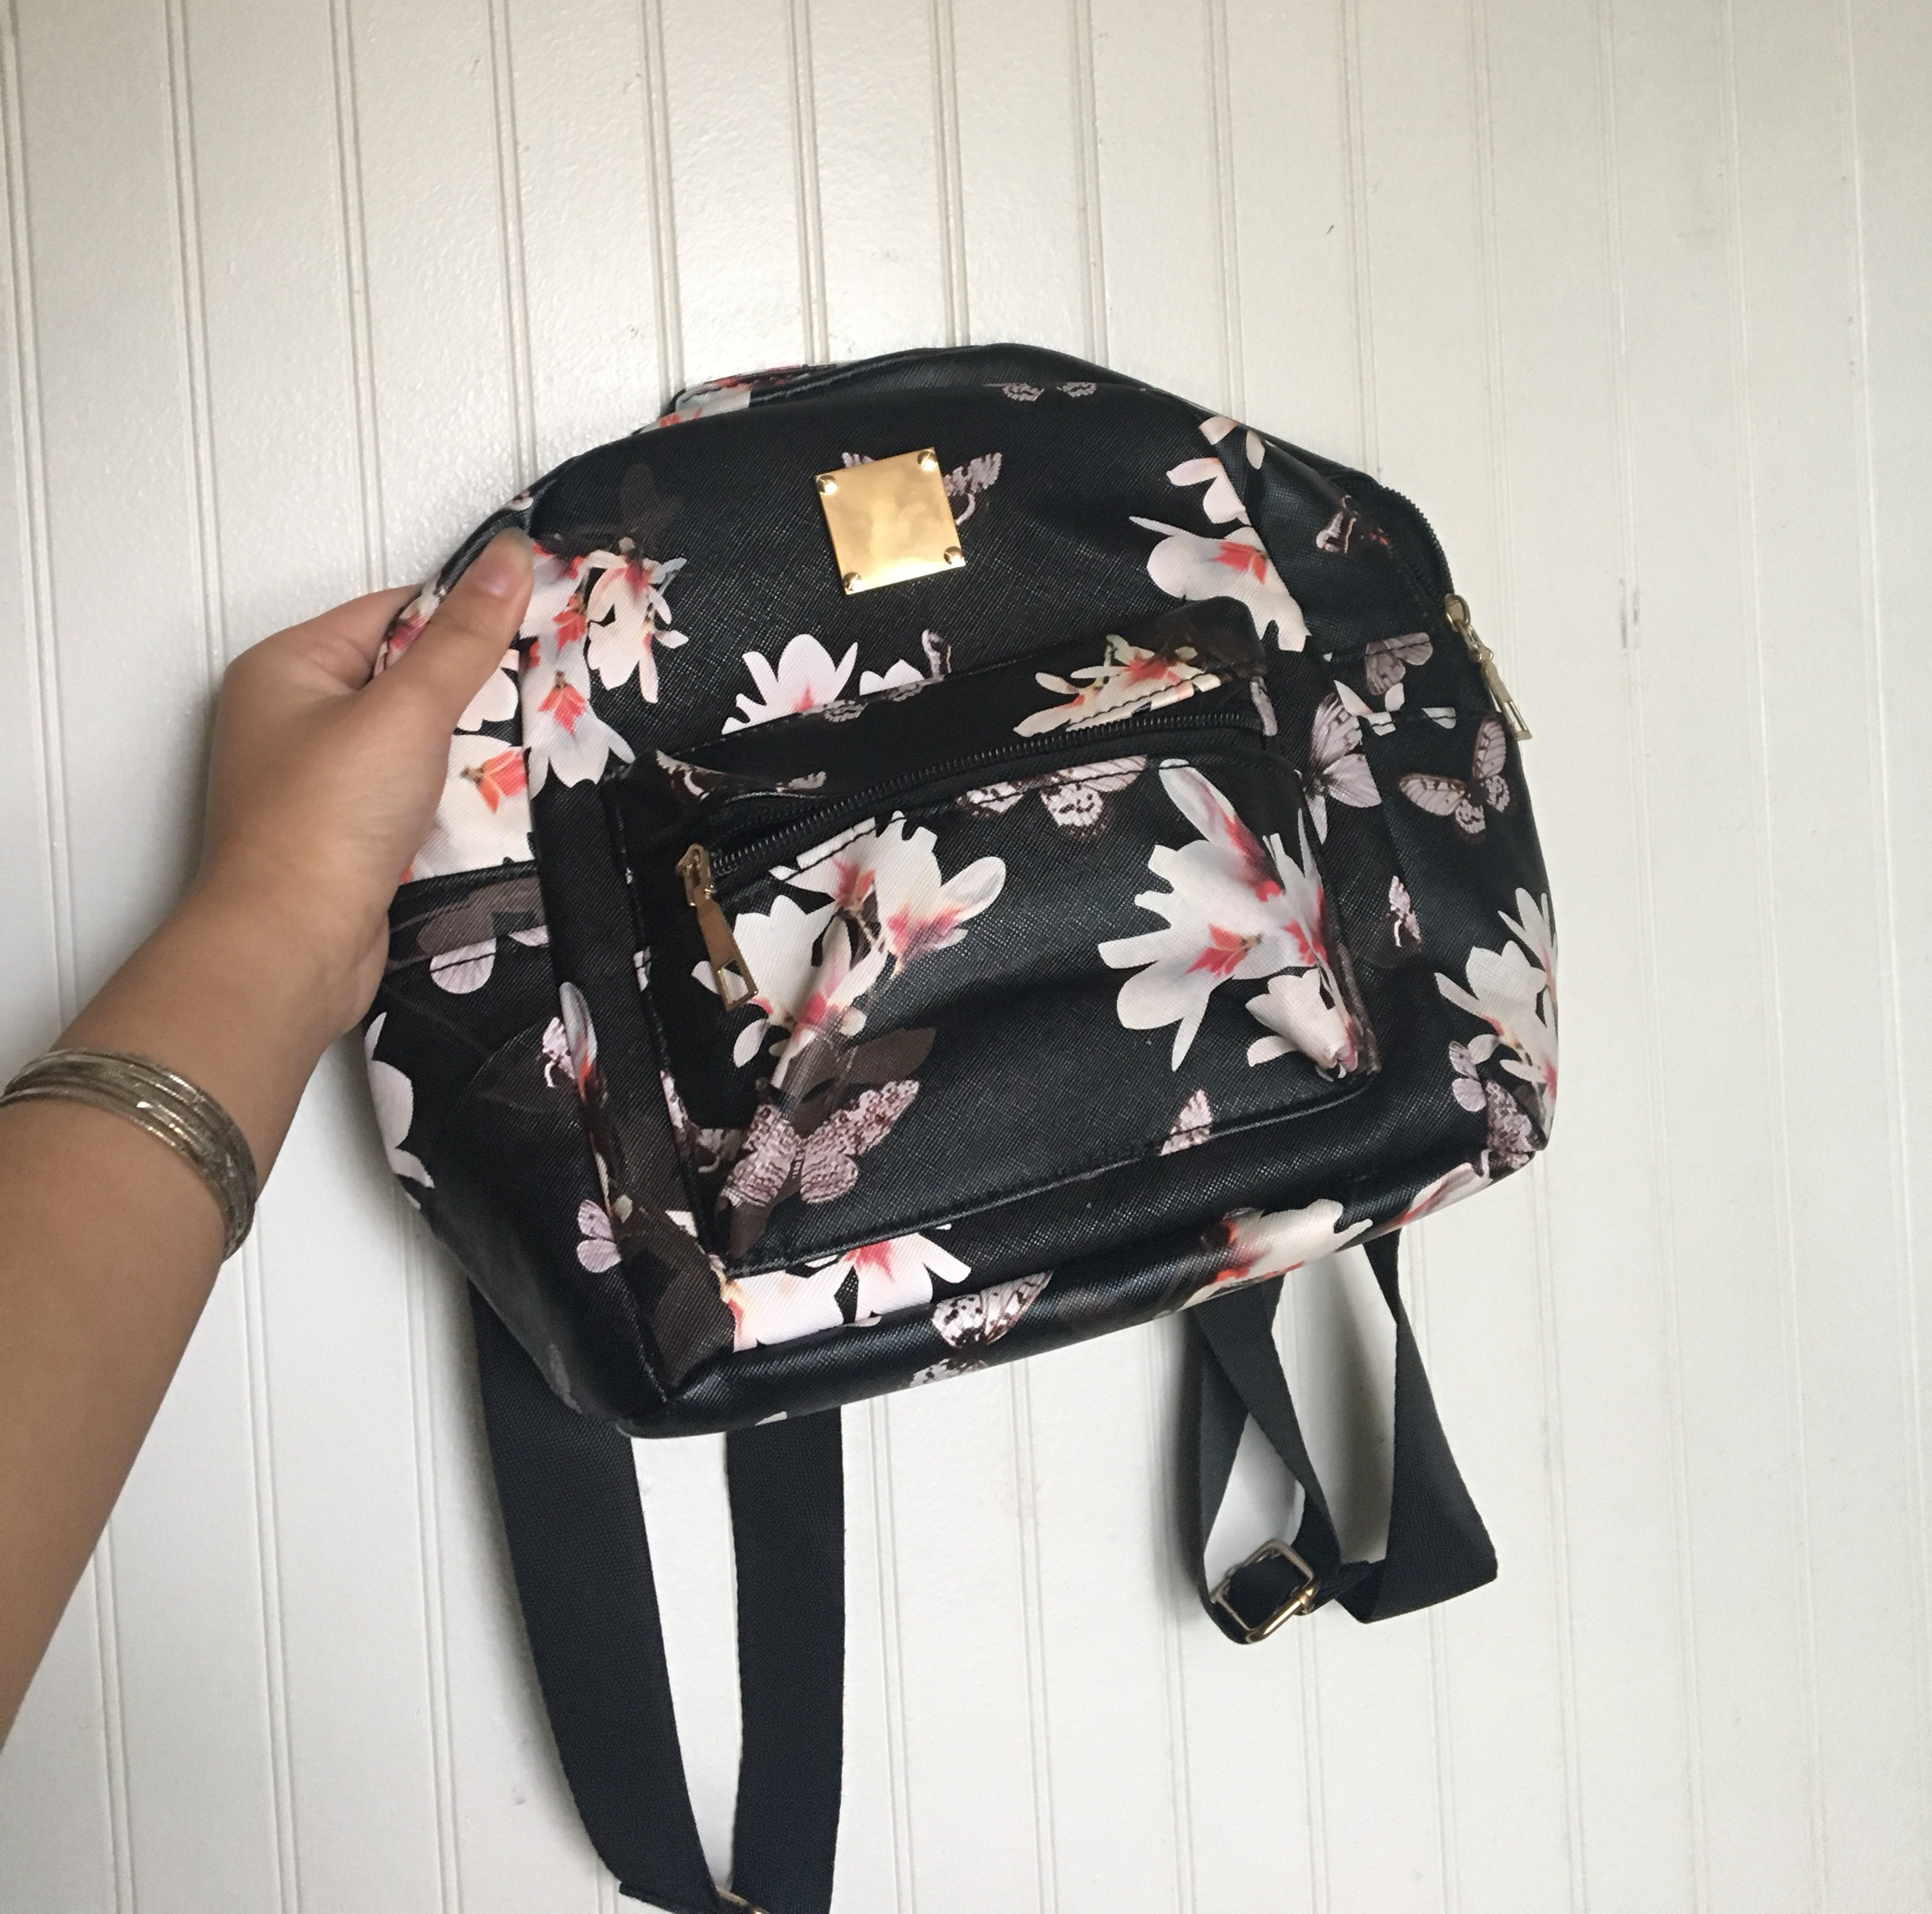 Floral mini backpack/bag Good condition Very roomy    - Depop